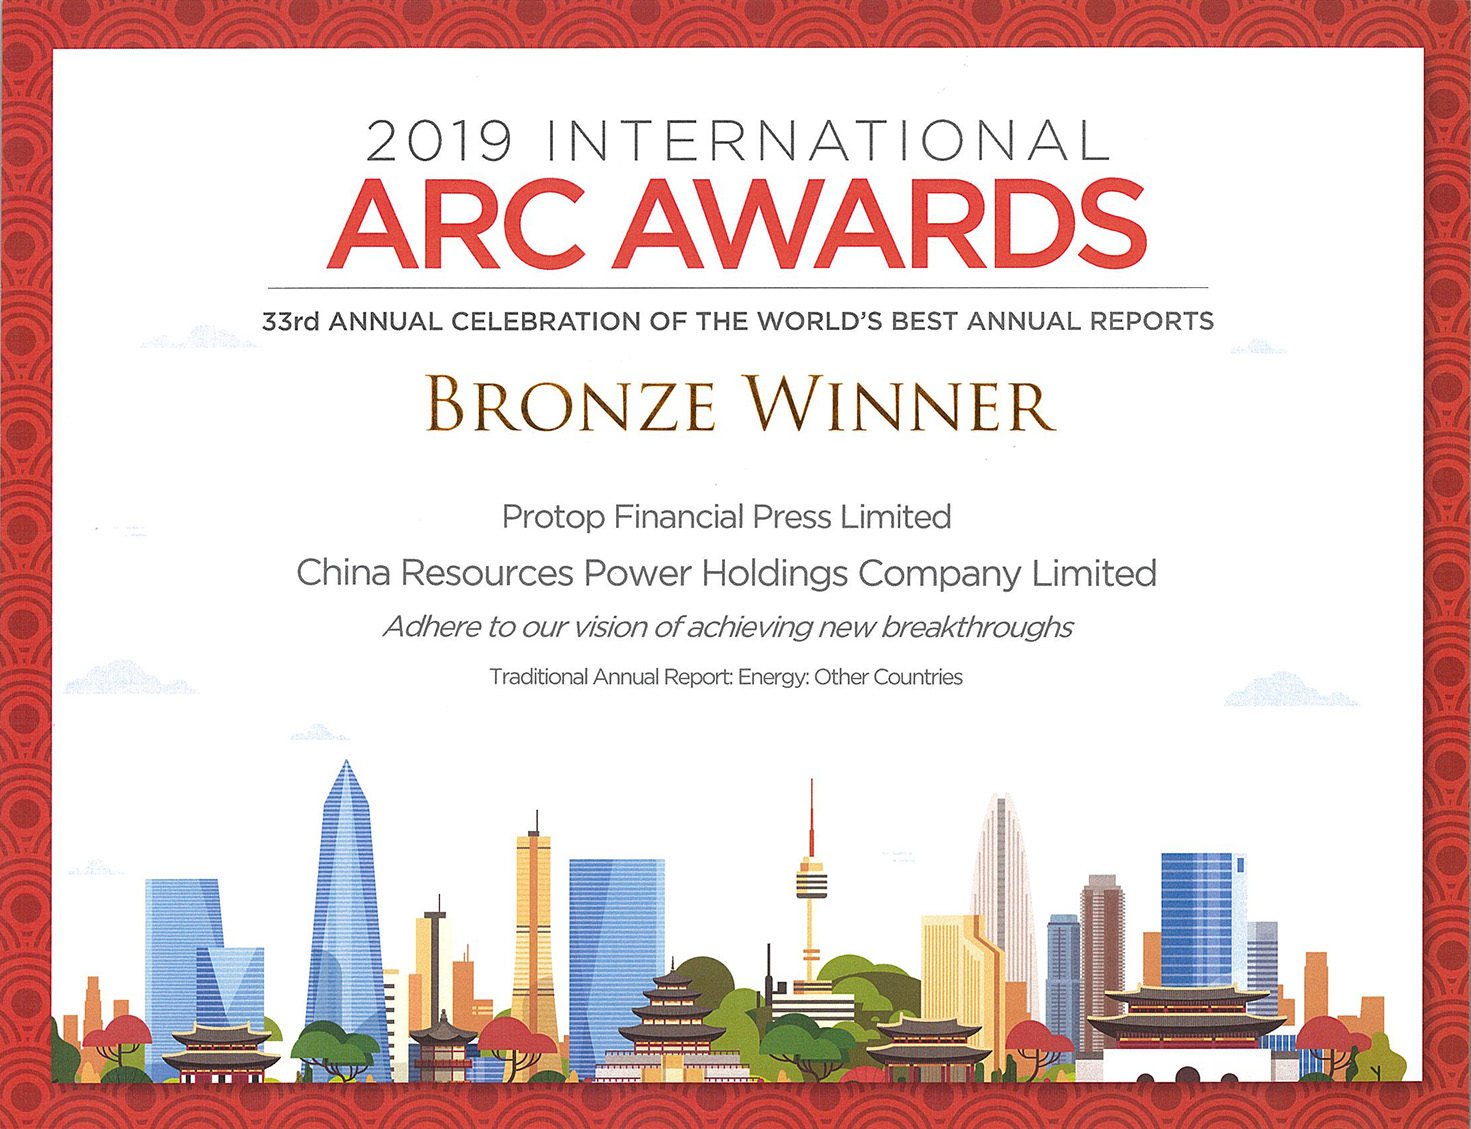 華潤電力控股有限公司 – 2019 ARC AWARDS BRONZE WINNER Traditional Annual Report: Energy: Other Countries